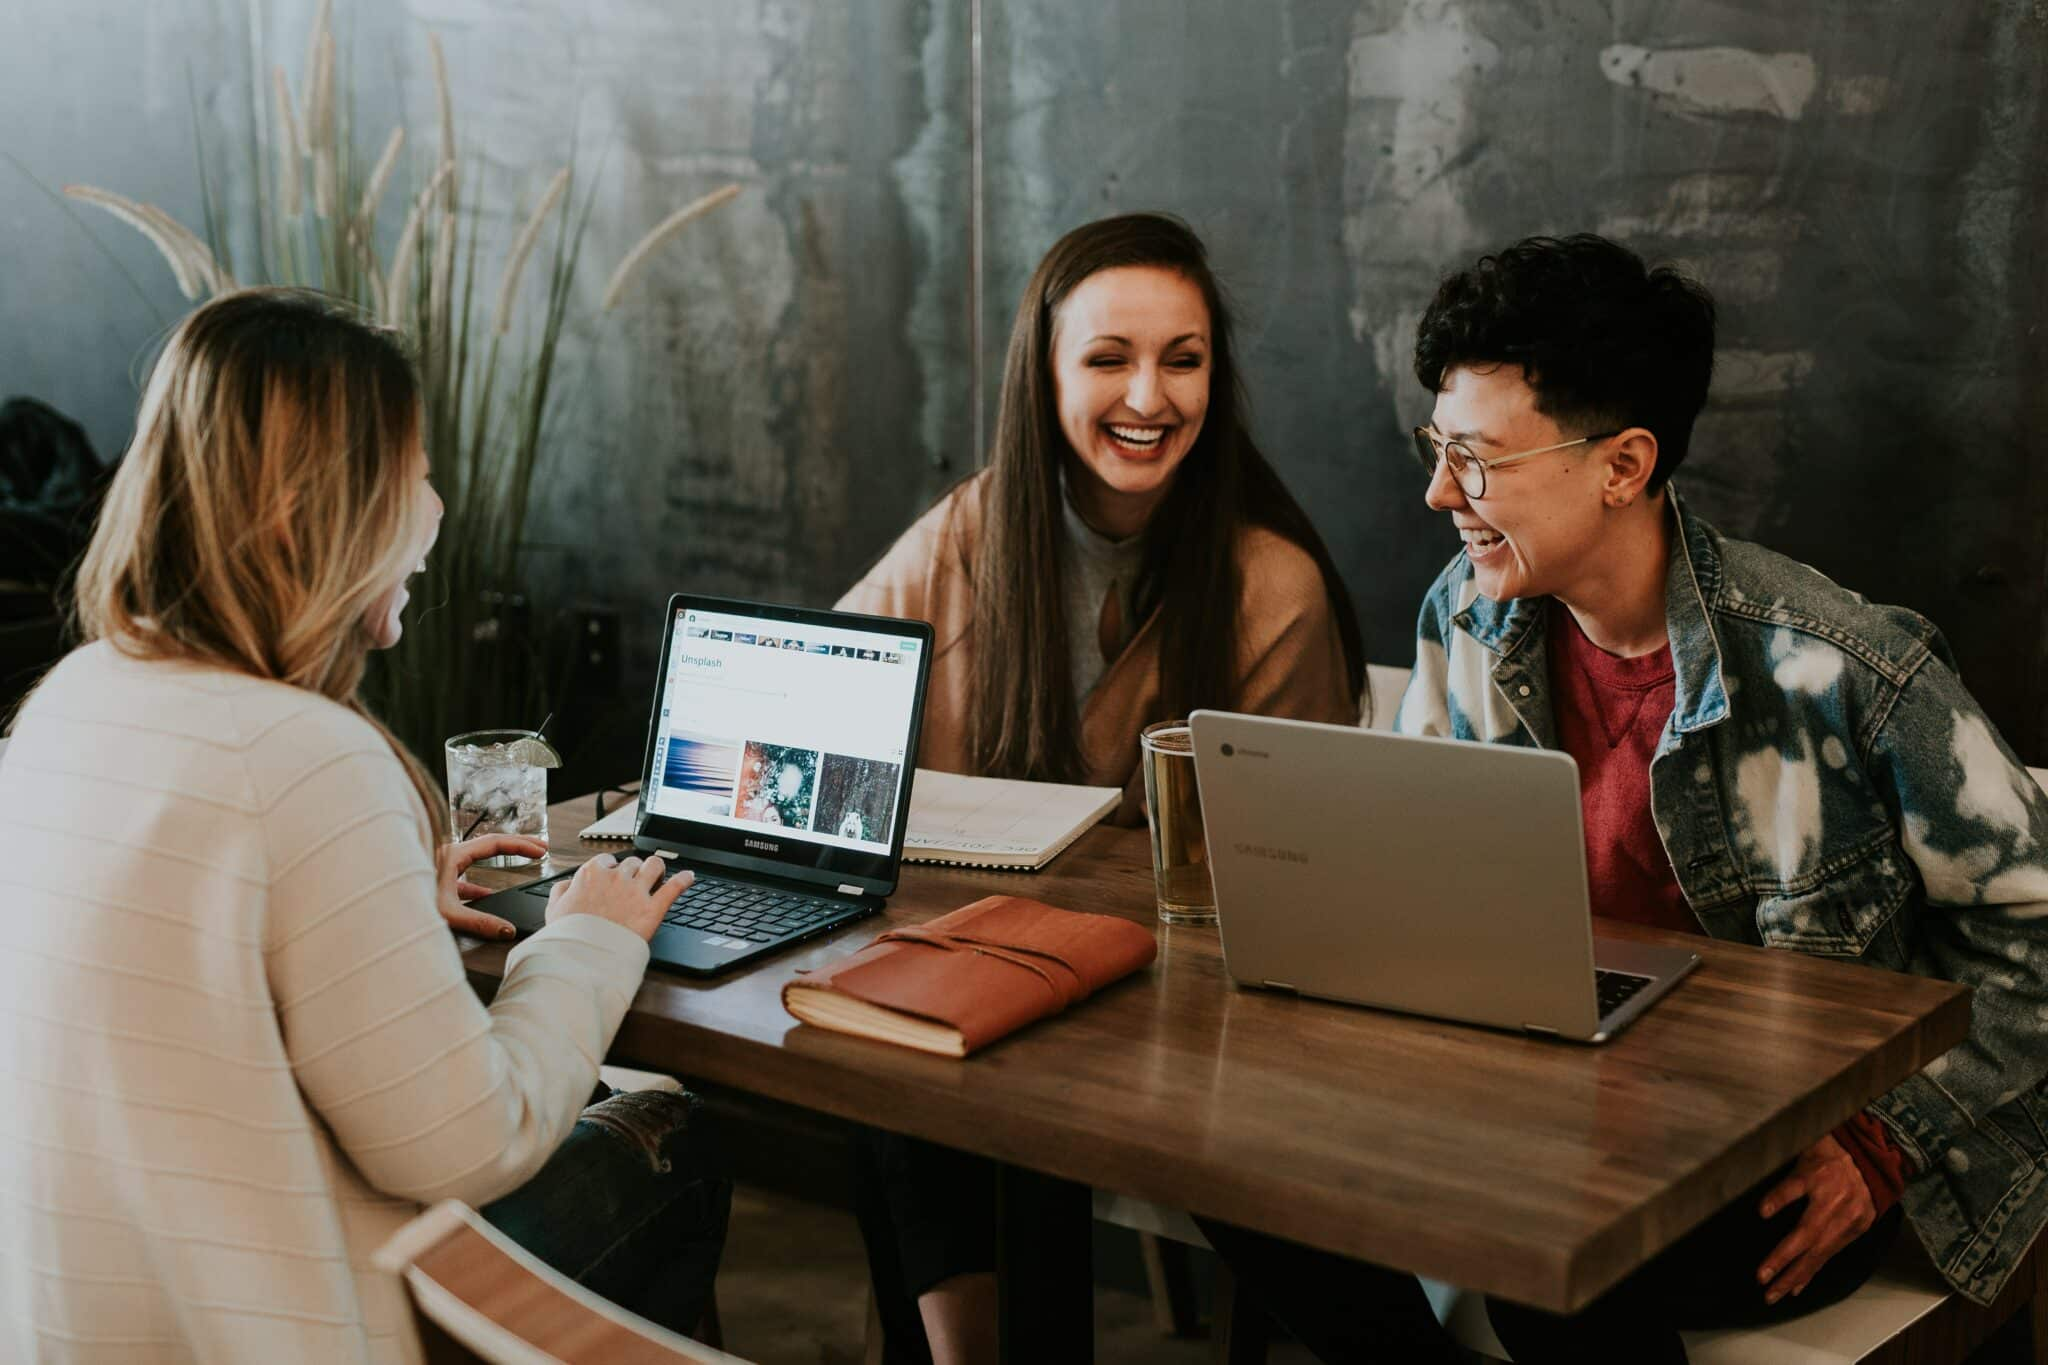 Attracting and keeping millennials